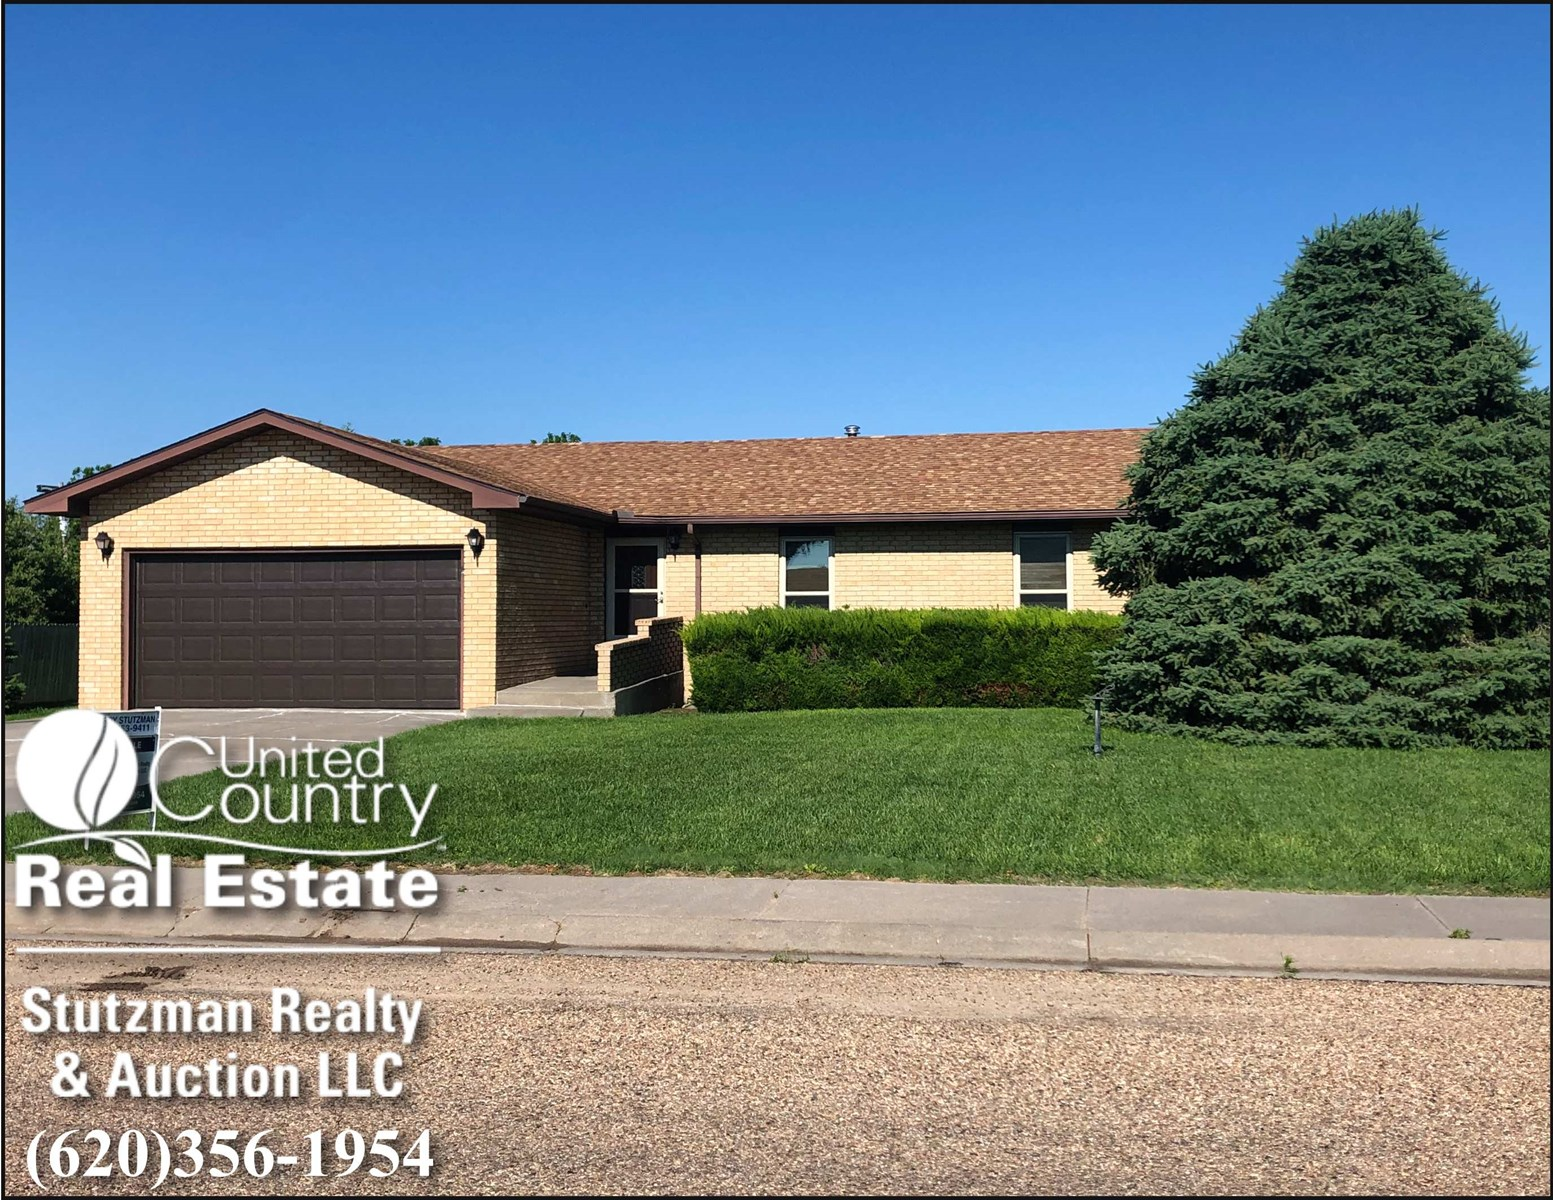 AFFORDABLE BRICK HOME FOR SALE IN ULYSSES, KS